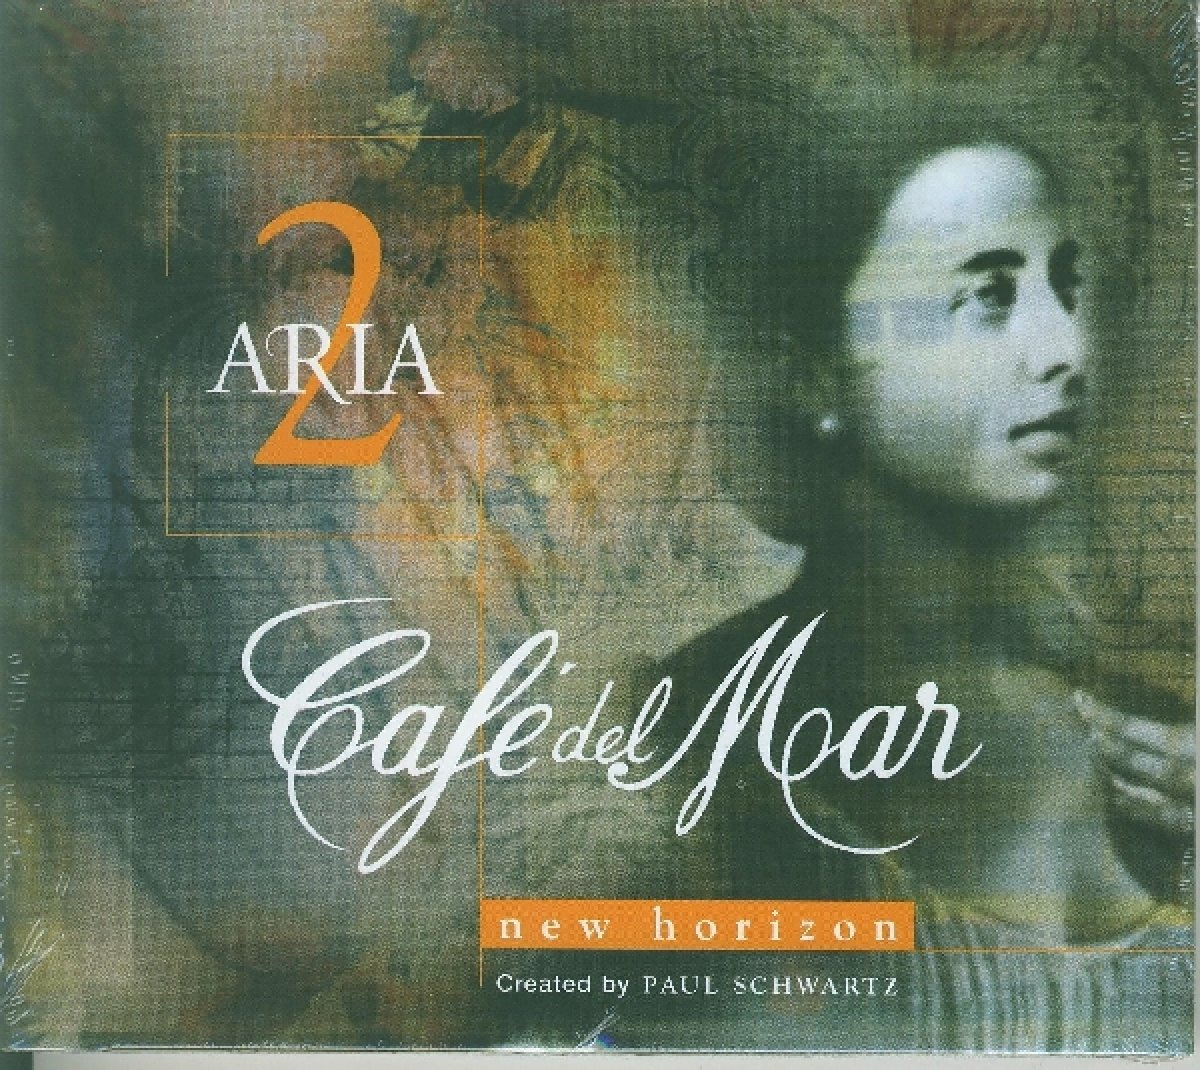 Vol. 2-Cafe Del Mar Aria by Imports